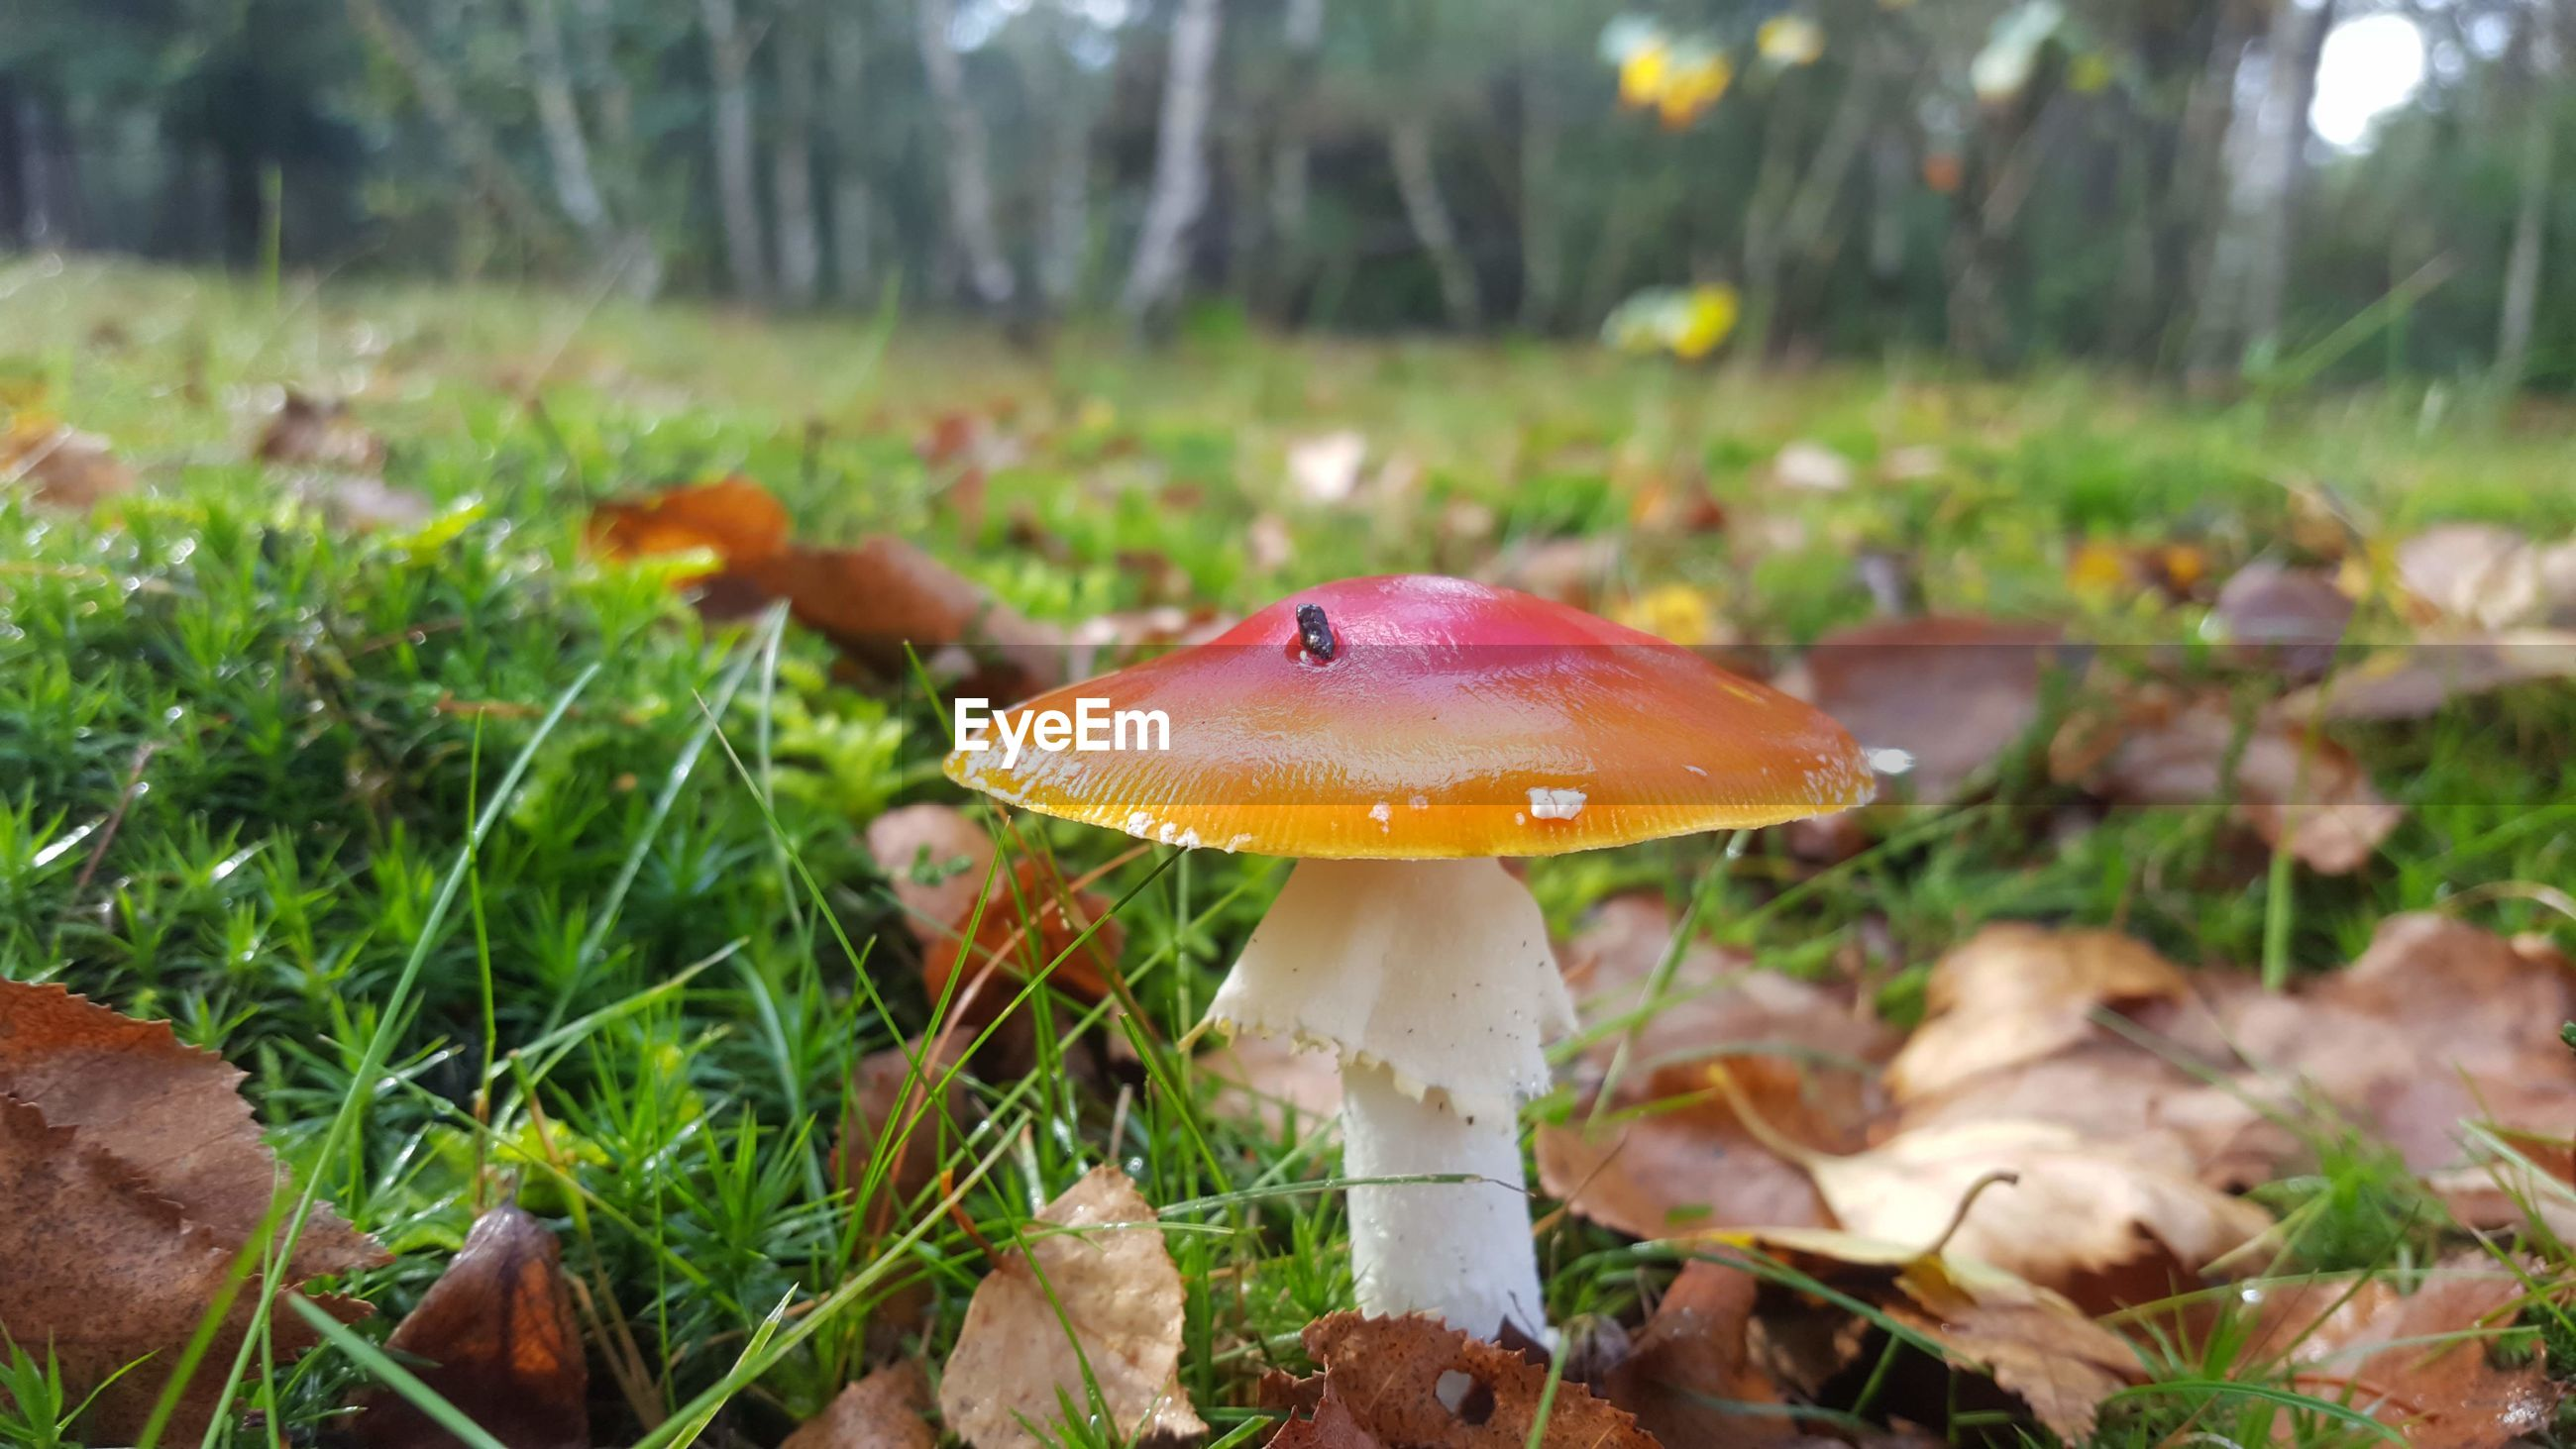 CLOSE-UP OF MUSHROOMS ON FIELD